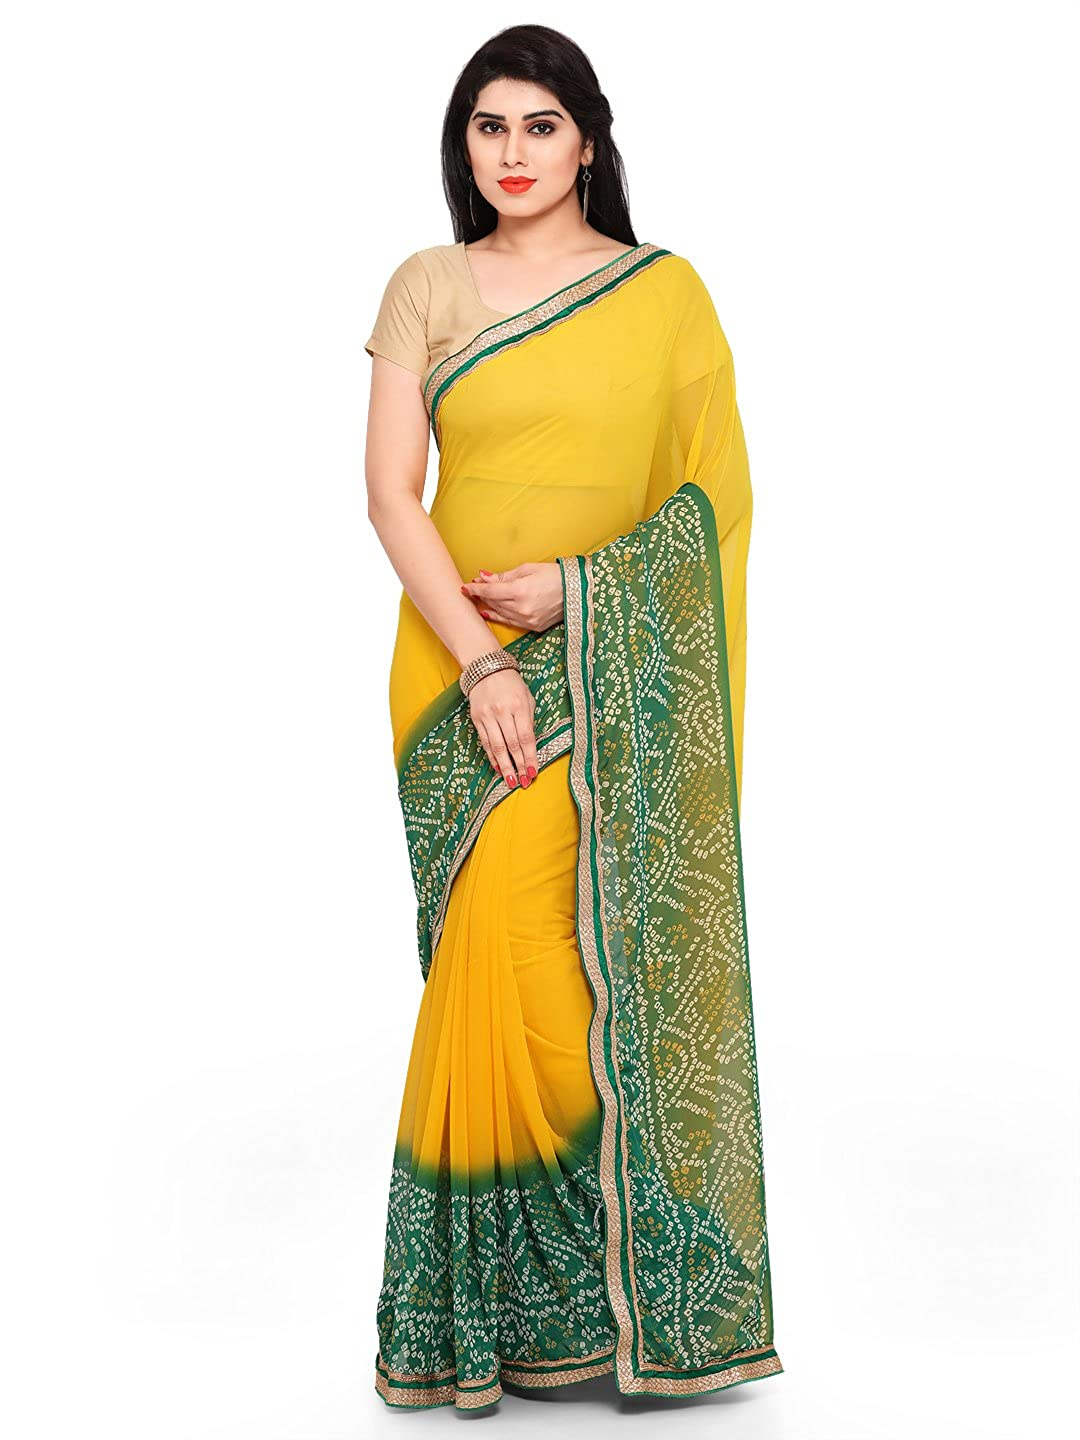 Womanista Women's Printed Faux Georgette Saree with Blouse Piece